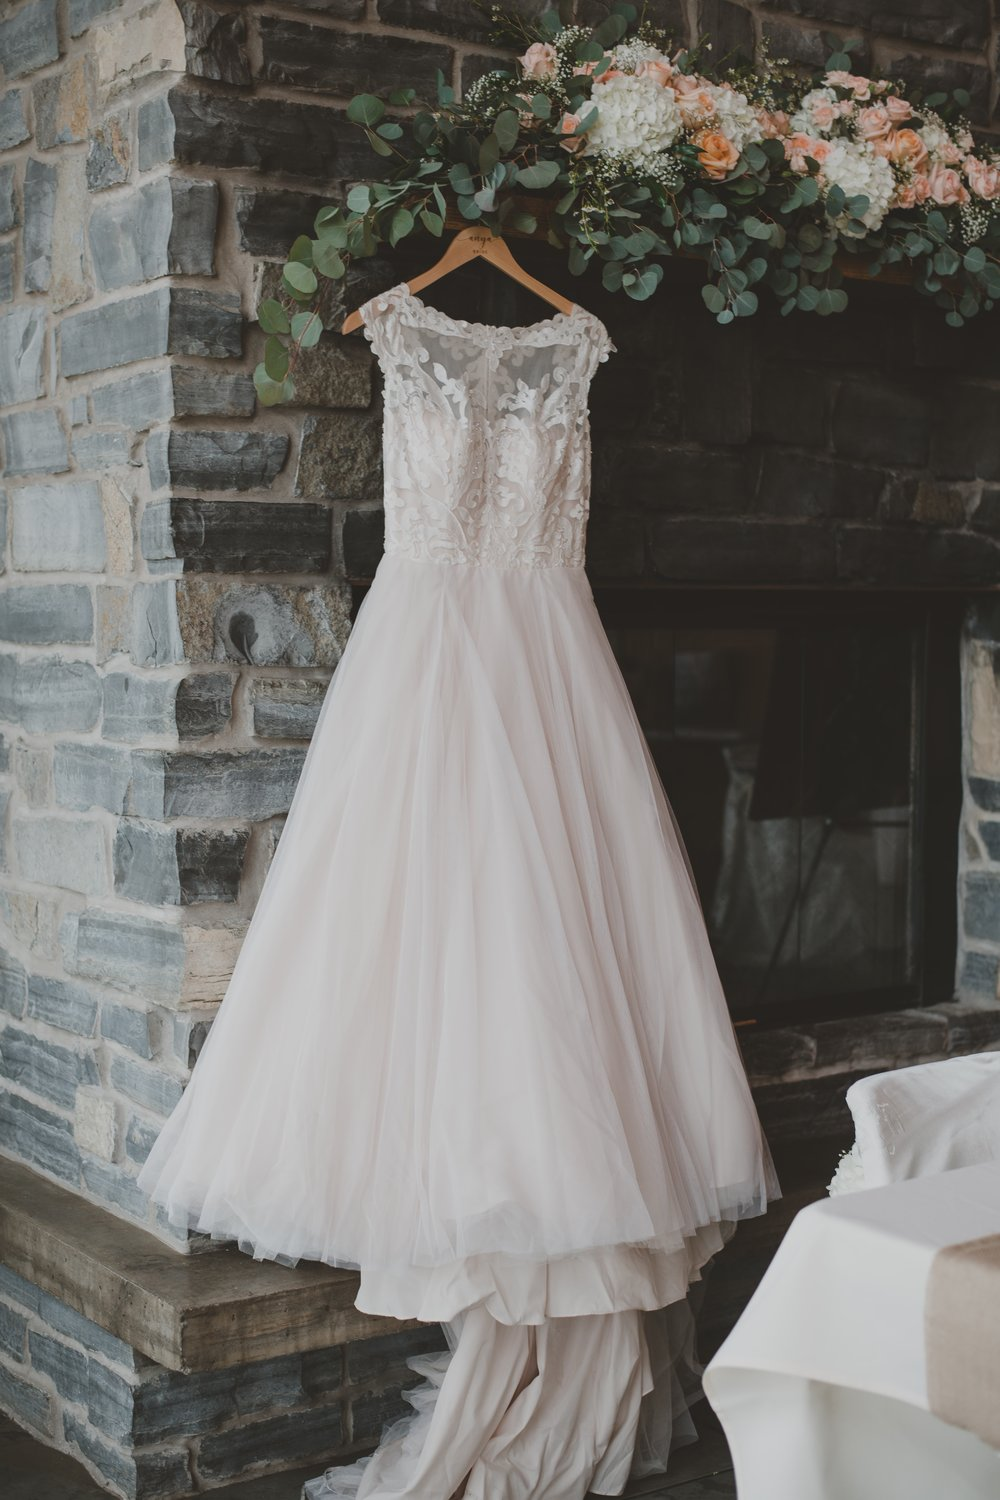 ivory-and-beau-savannah-bridal-shop-ivory-and-beau-bride-anya-carrie-by-maggie-sottero-savannah-bride-savannah-weddings-savannah-bridal-boutique-moe-b-photography-savannah-wedding-gowns-5.jpg